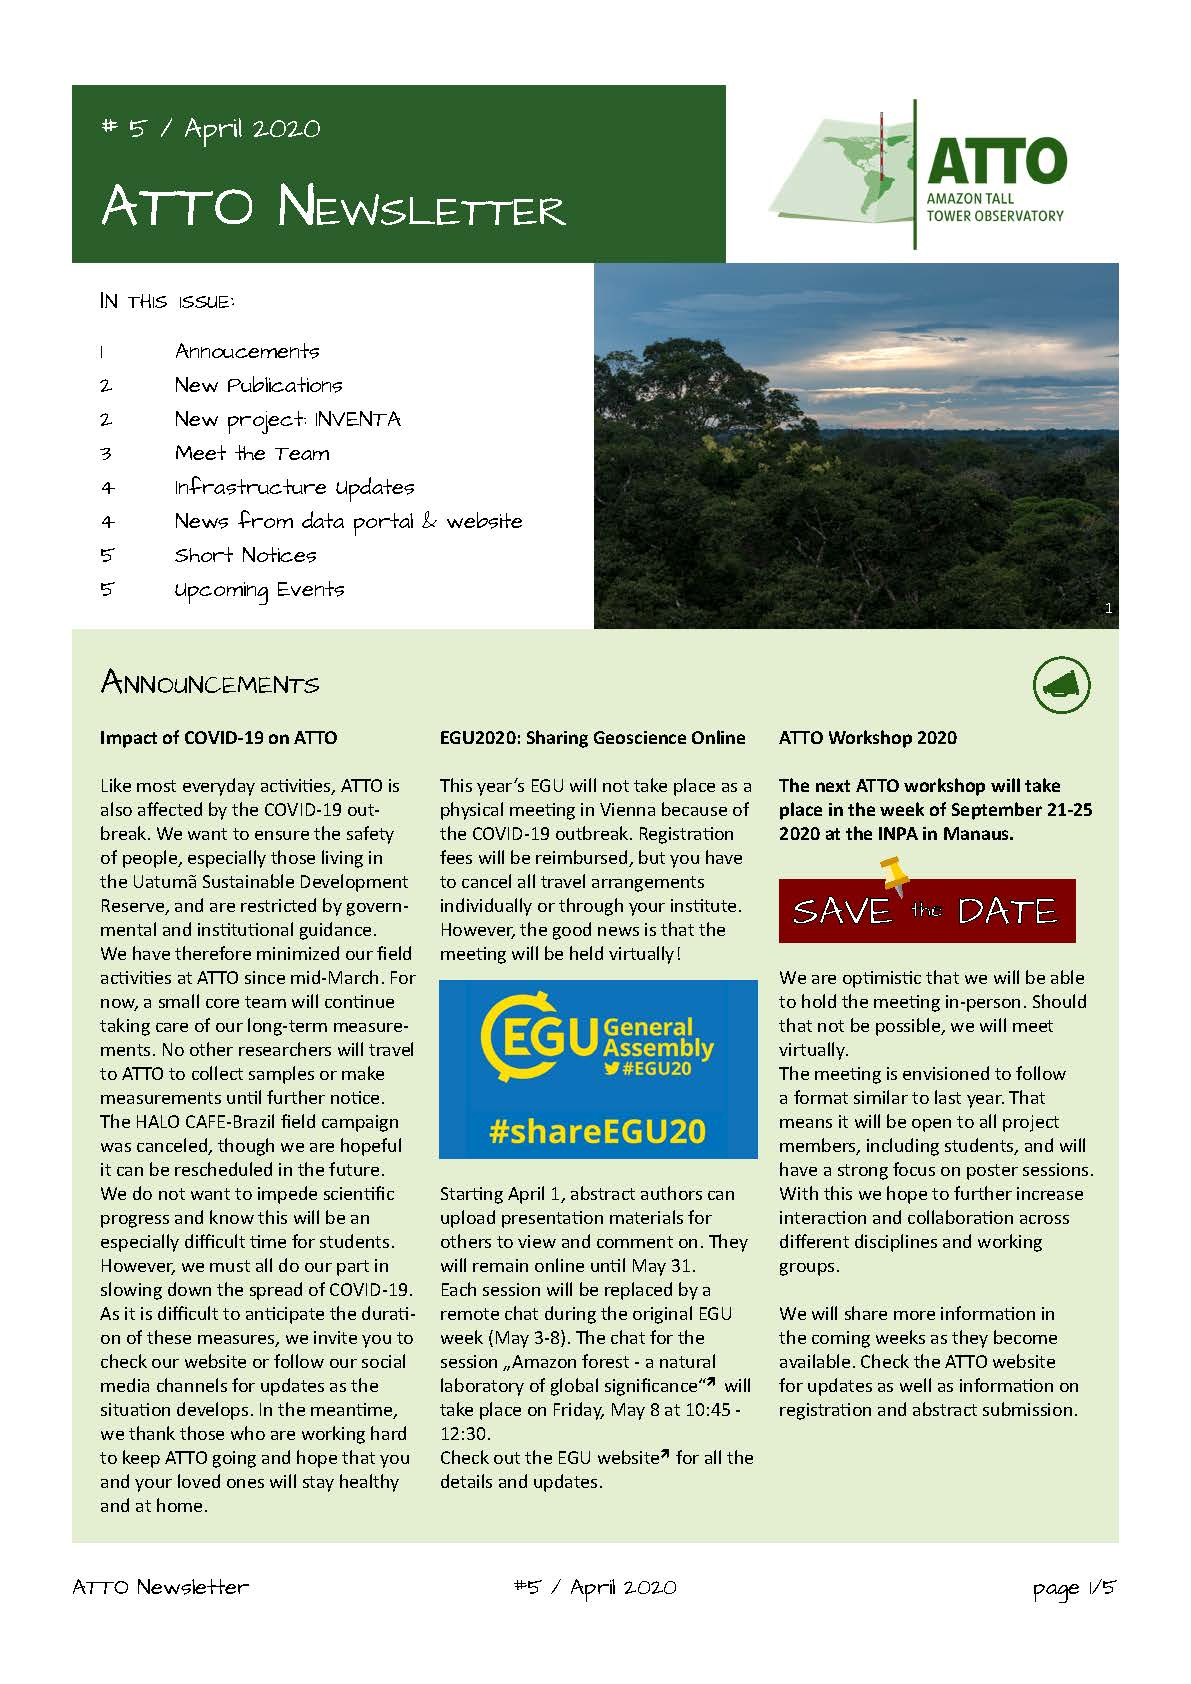 Cover of the ATTO Newsletter April 2020